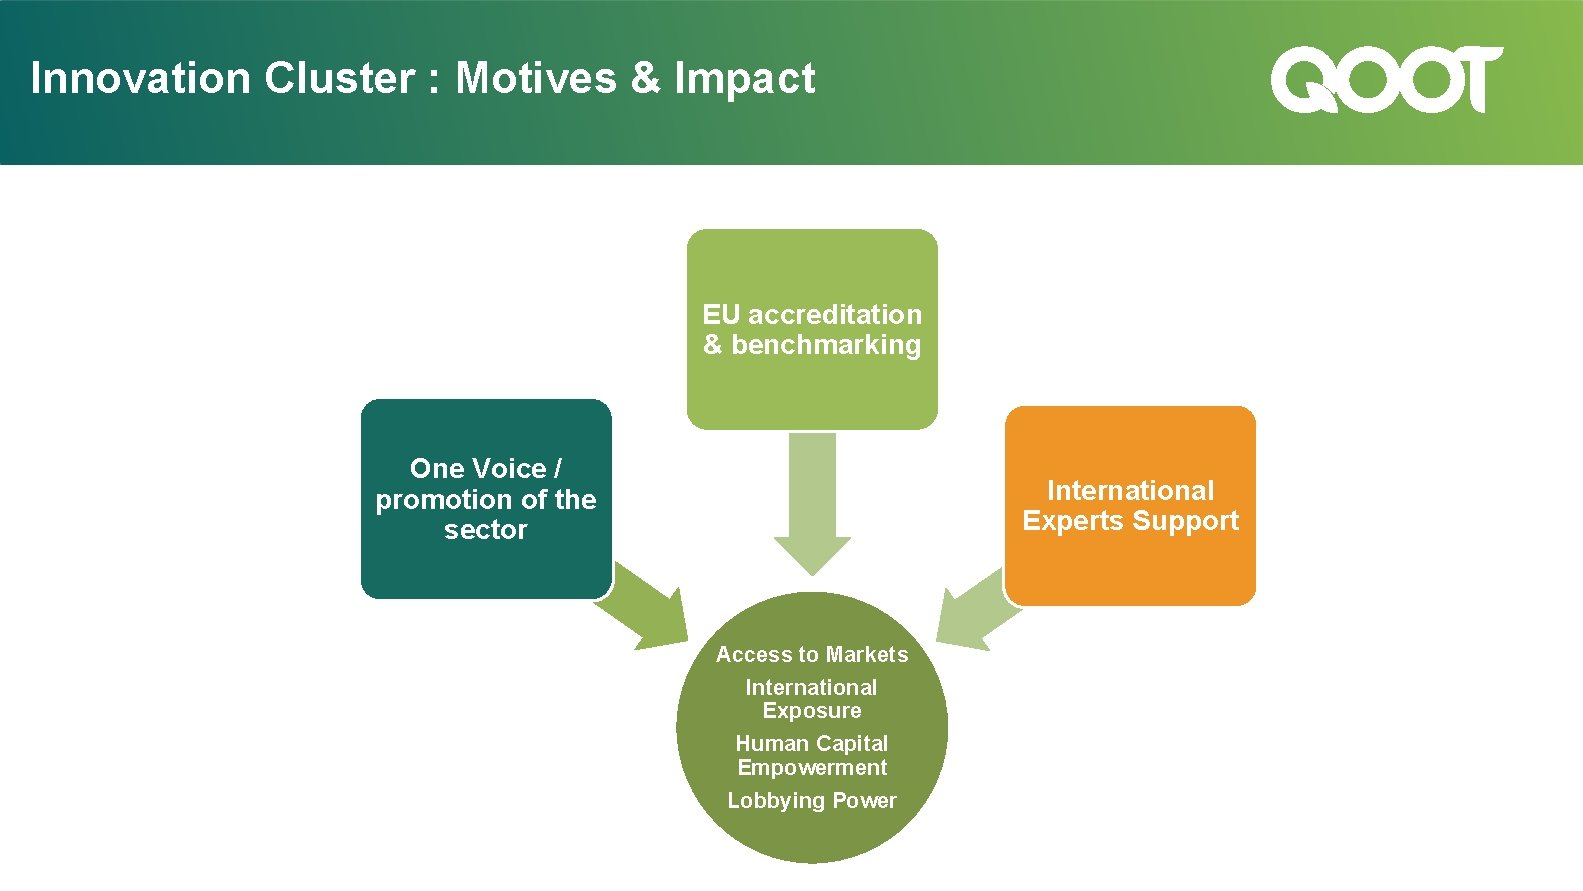 Innovation Cluster : Motives & Impact EU accreditation & benchmarking One Voice / promotion